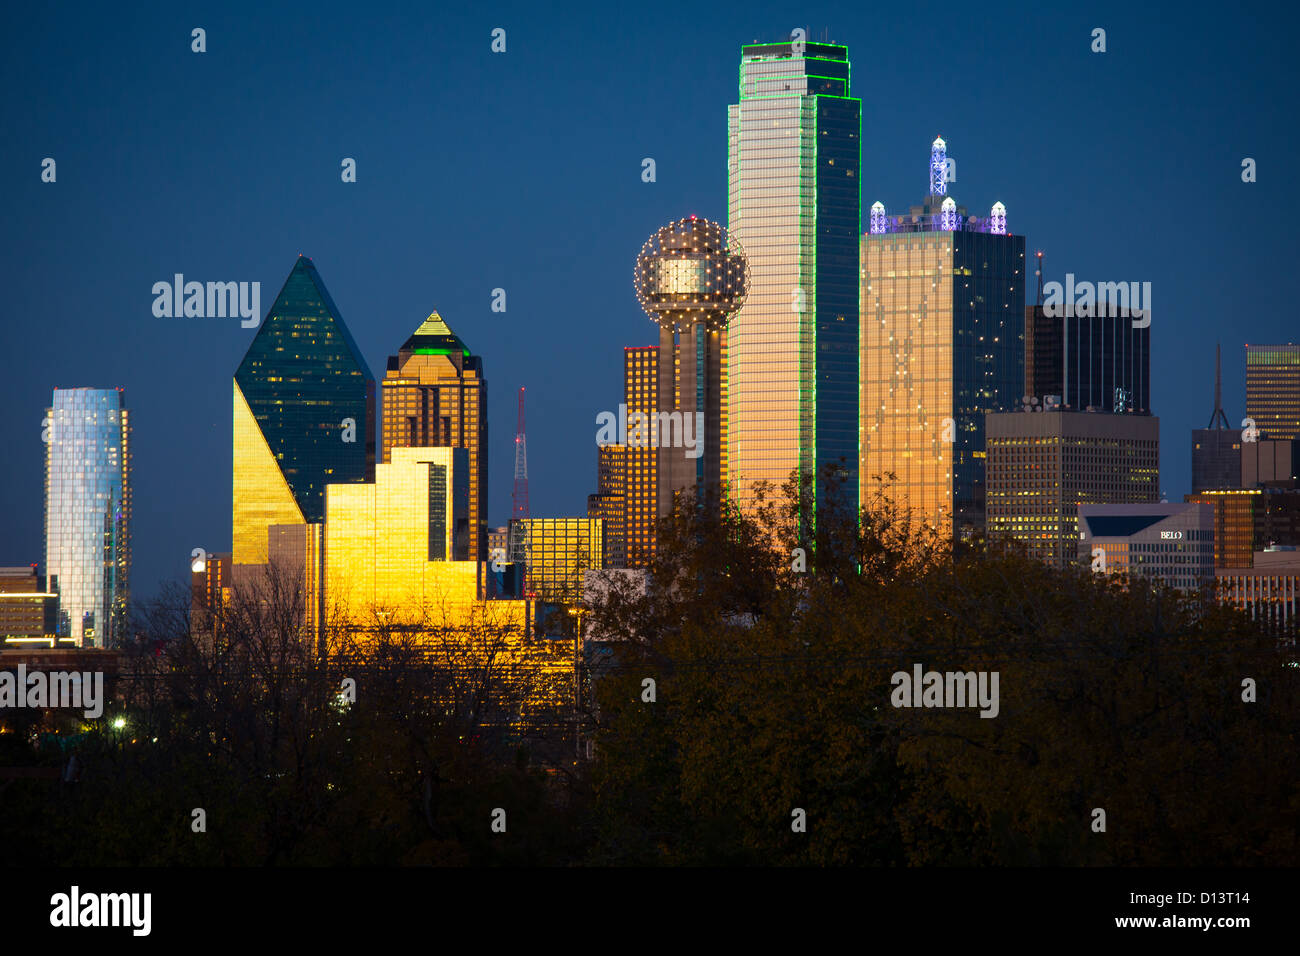 Dallas Downtown skyline at sunset Photo Stock